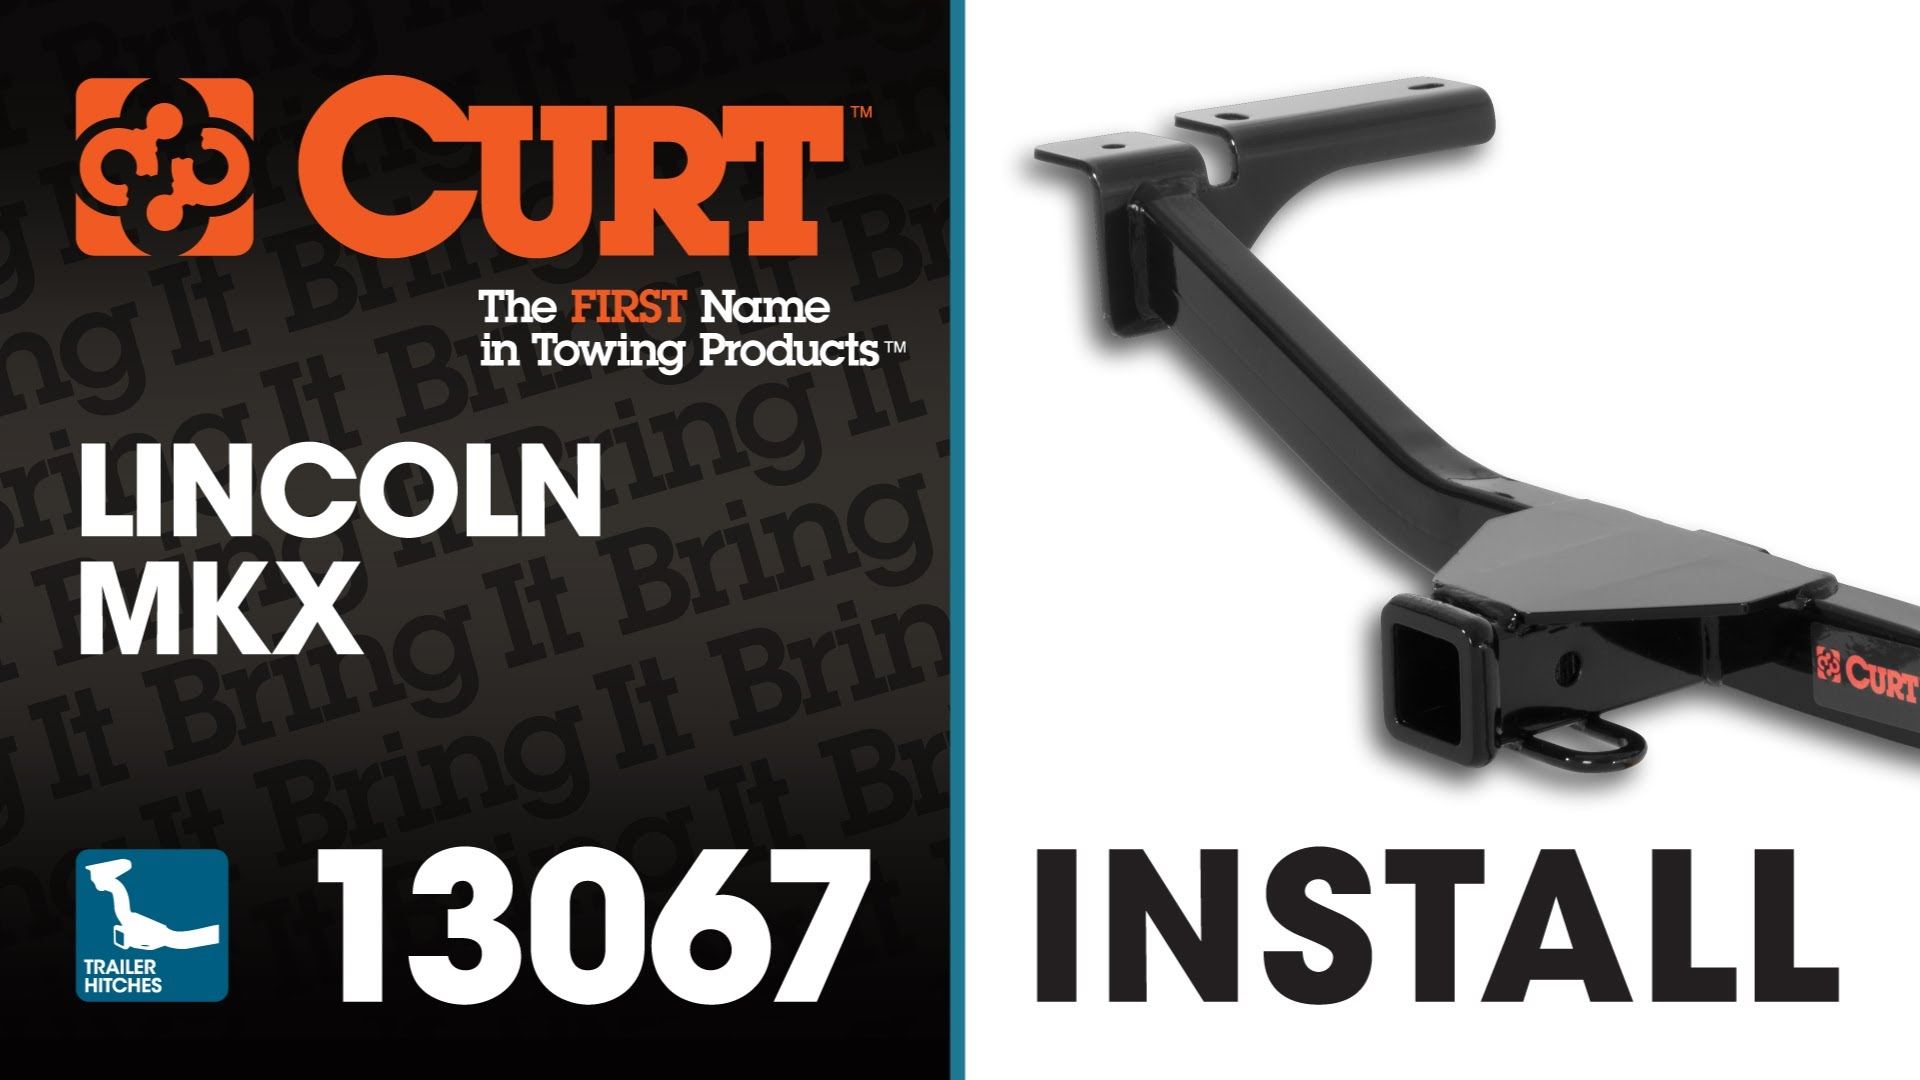 Trailer Hitch Install CURT 13067 on Lincoln MKX